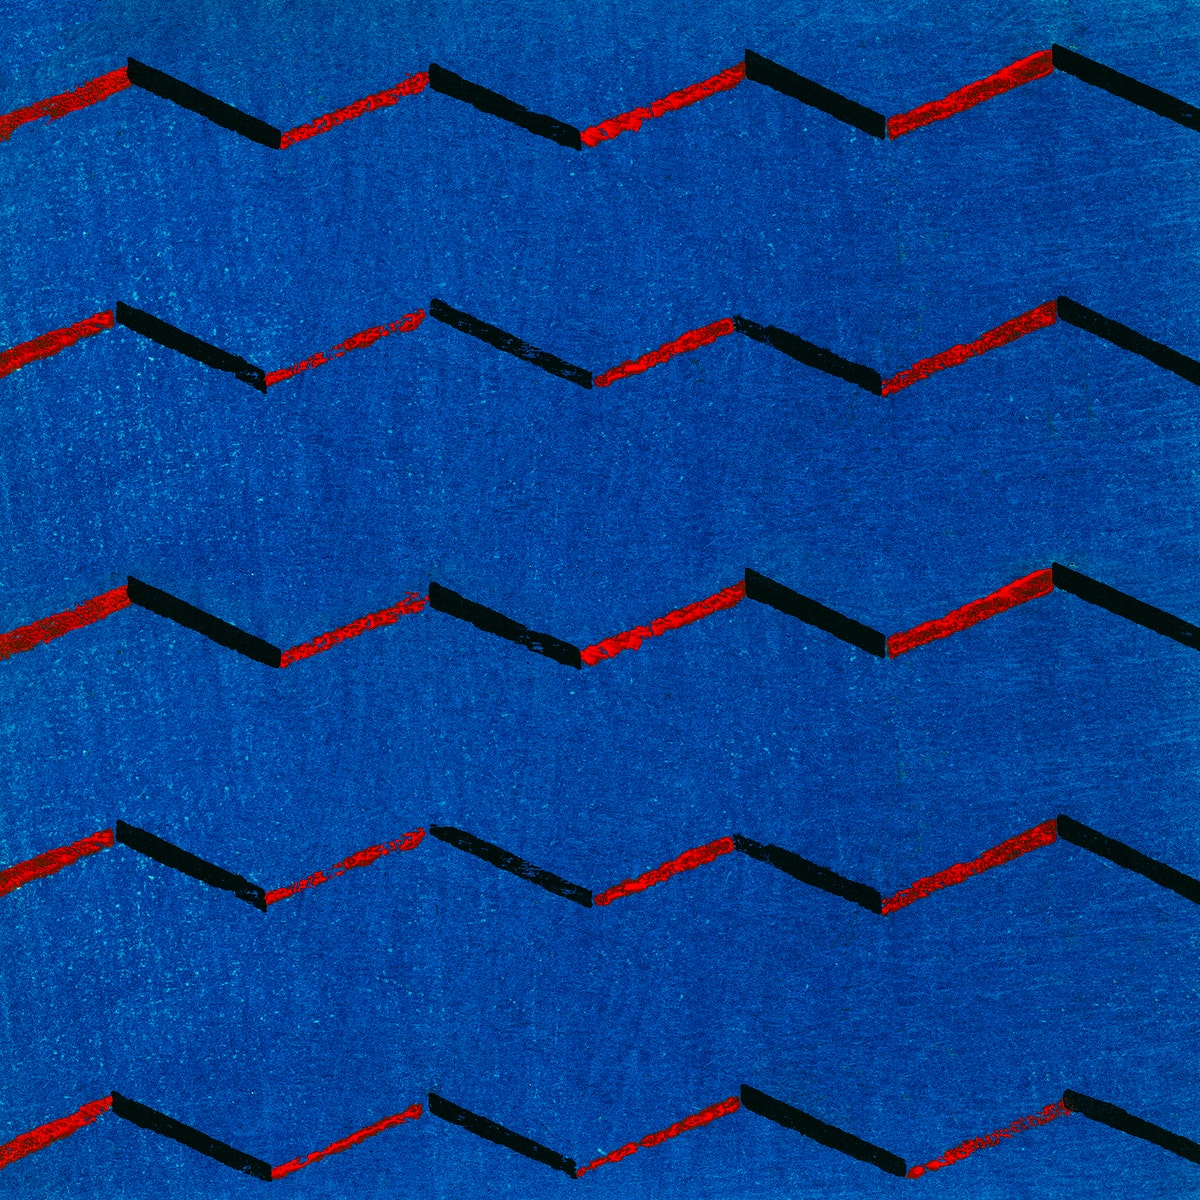 Vintage woodblock print of Japanese textile from Shima-Shima (1904) by Furuya Korin. Digitally enhanced from our own original…